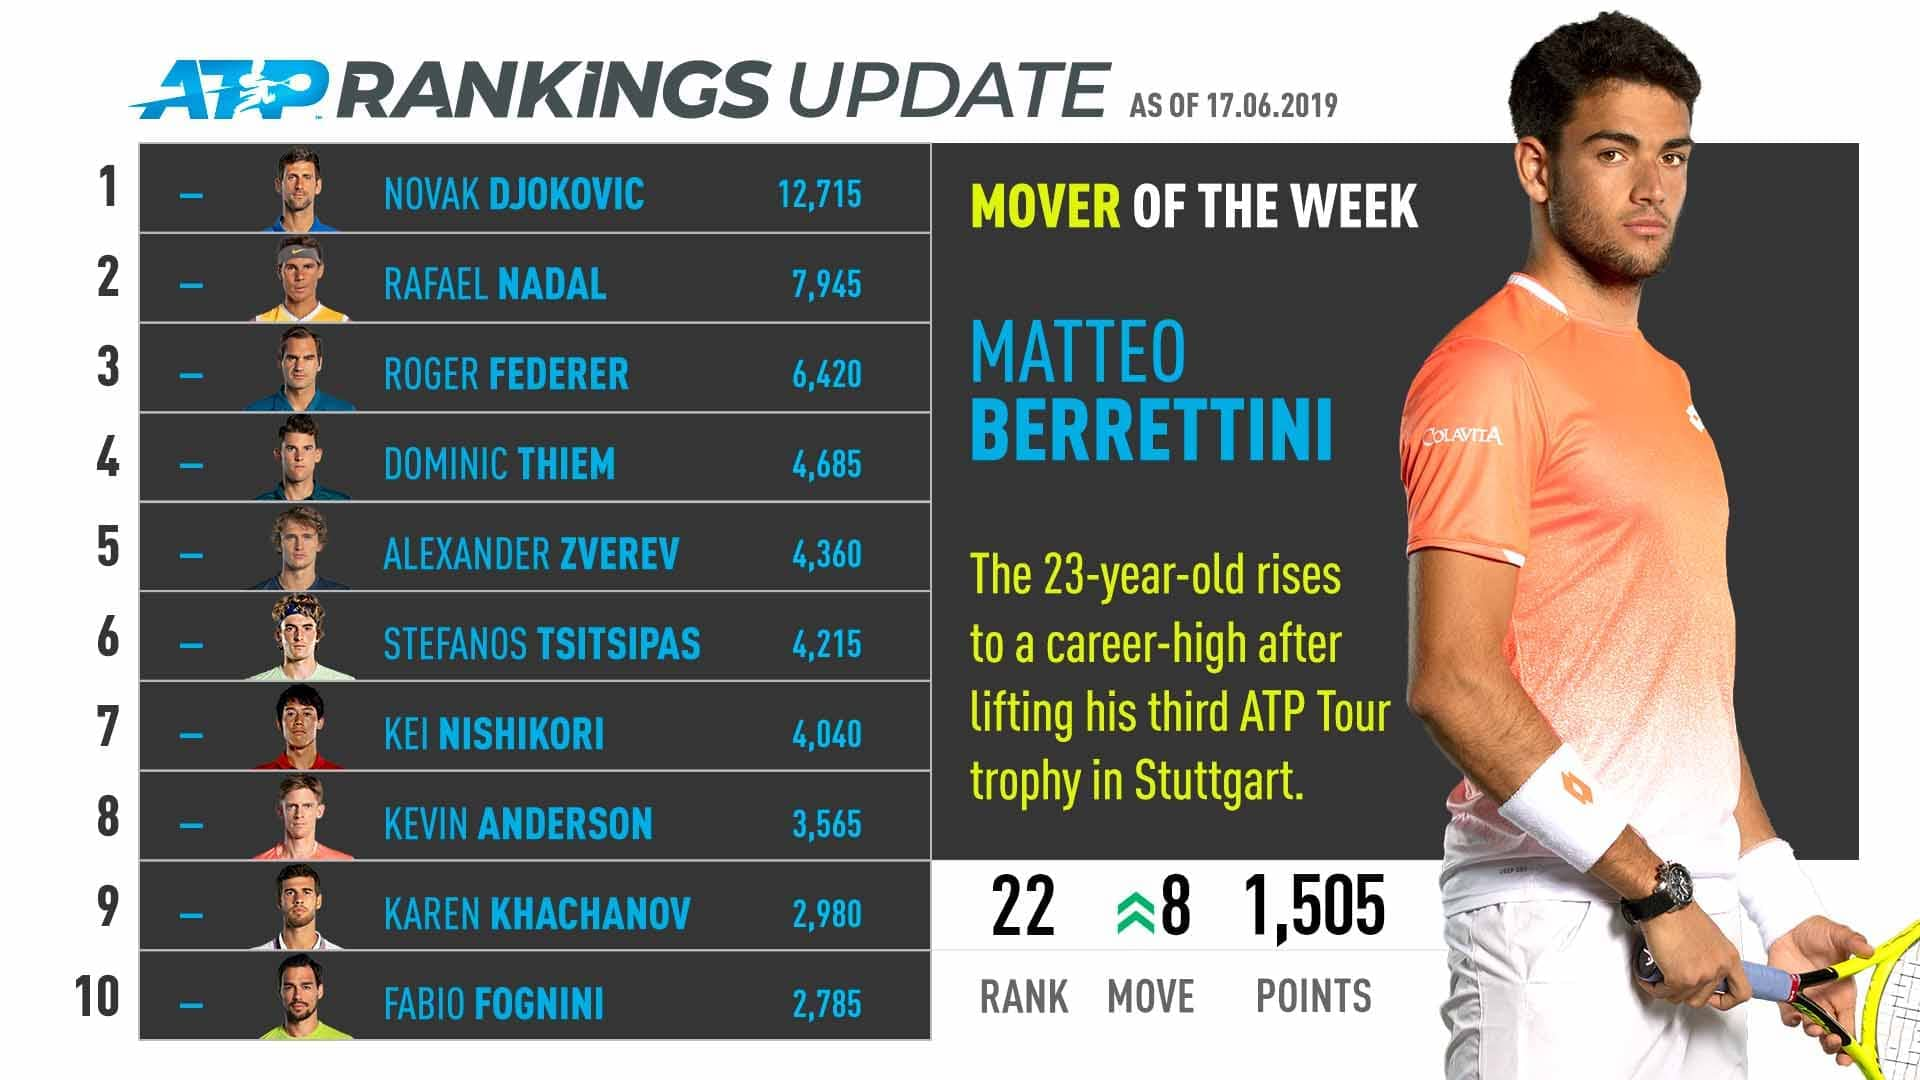 Matteo Berrettini rises eight spots to a career-high No. 22 in the ATP Rankings.